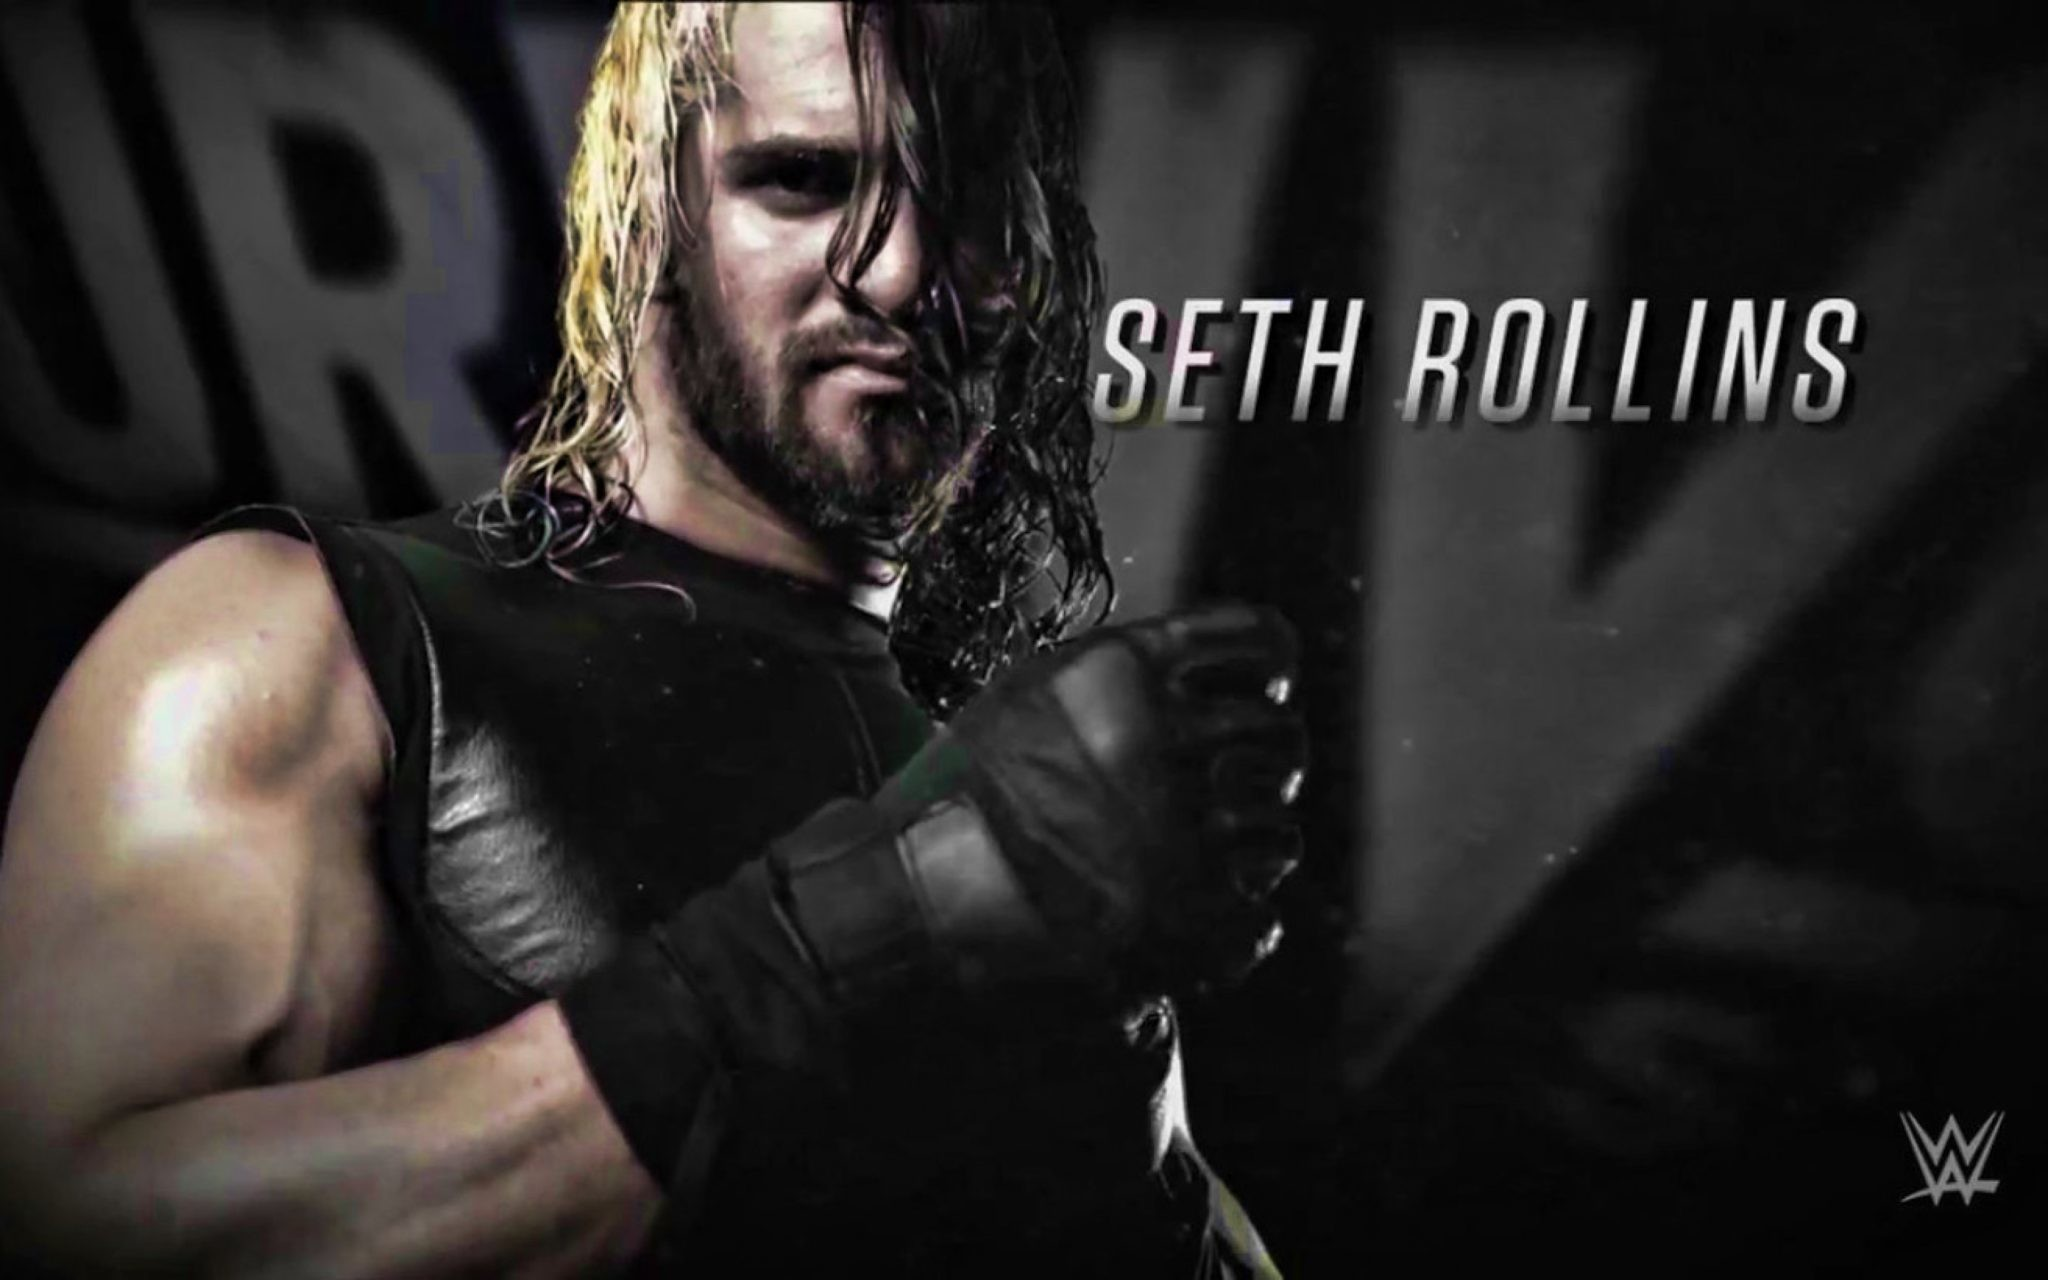 … Seth Rollins Wallpapers HD 11 …